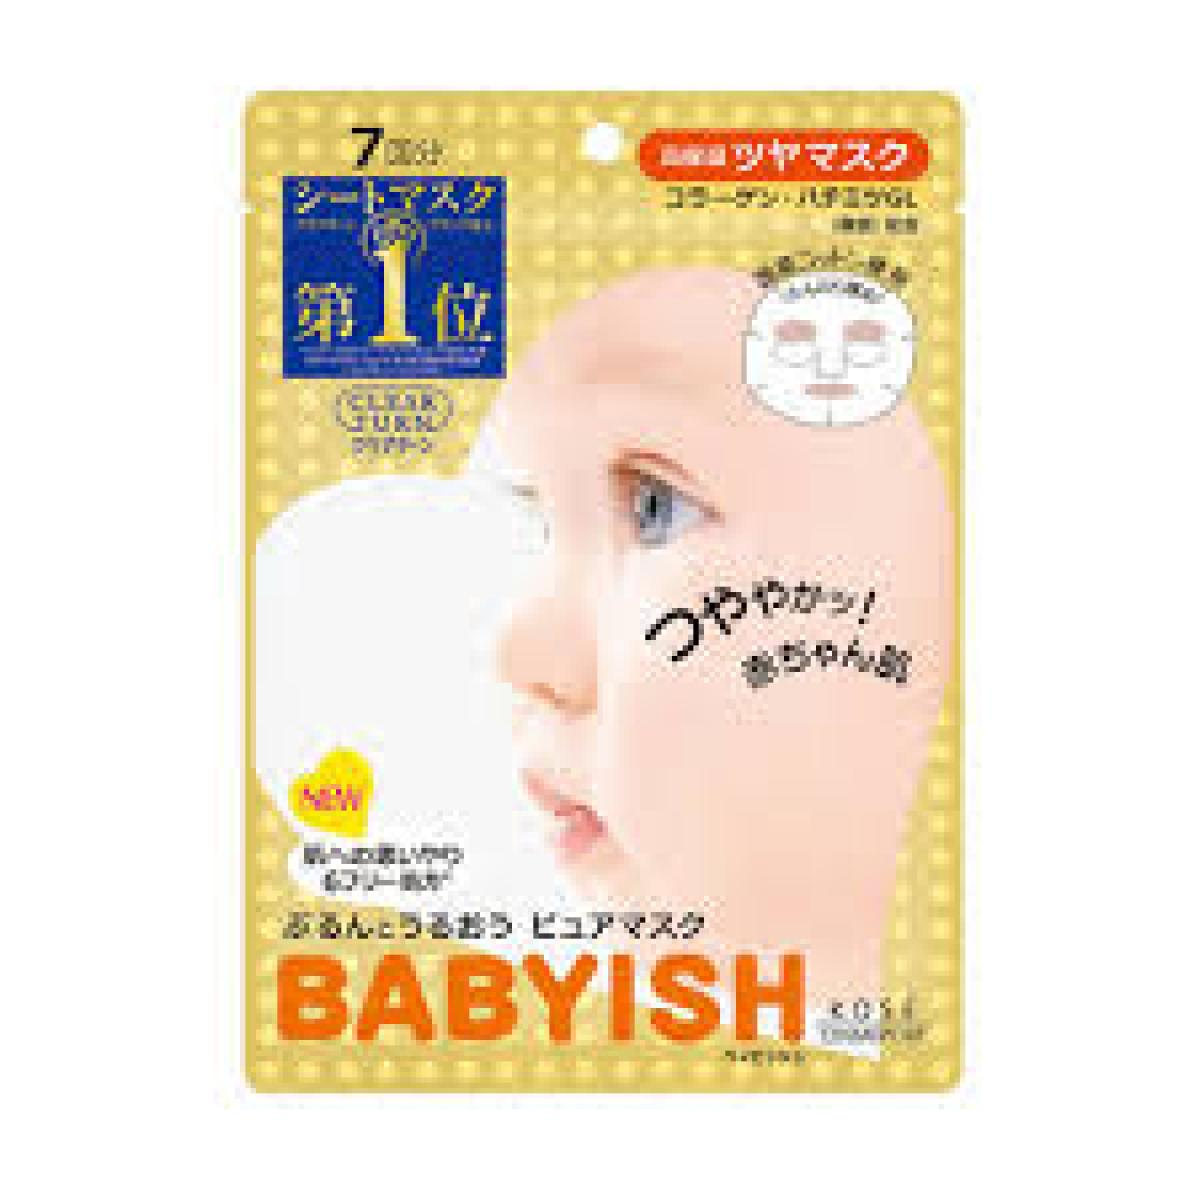 KOSE CLEAR TURN BABYISH PRECIOUS OIL IN MILKY FACE MASK PLUMPING 7 SHEETS